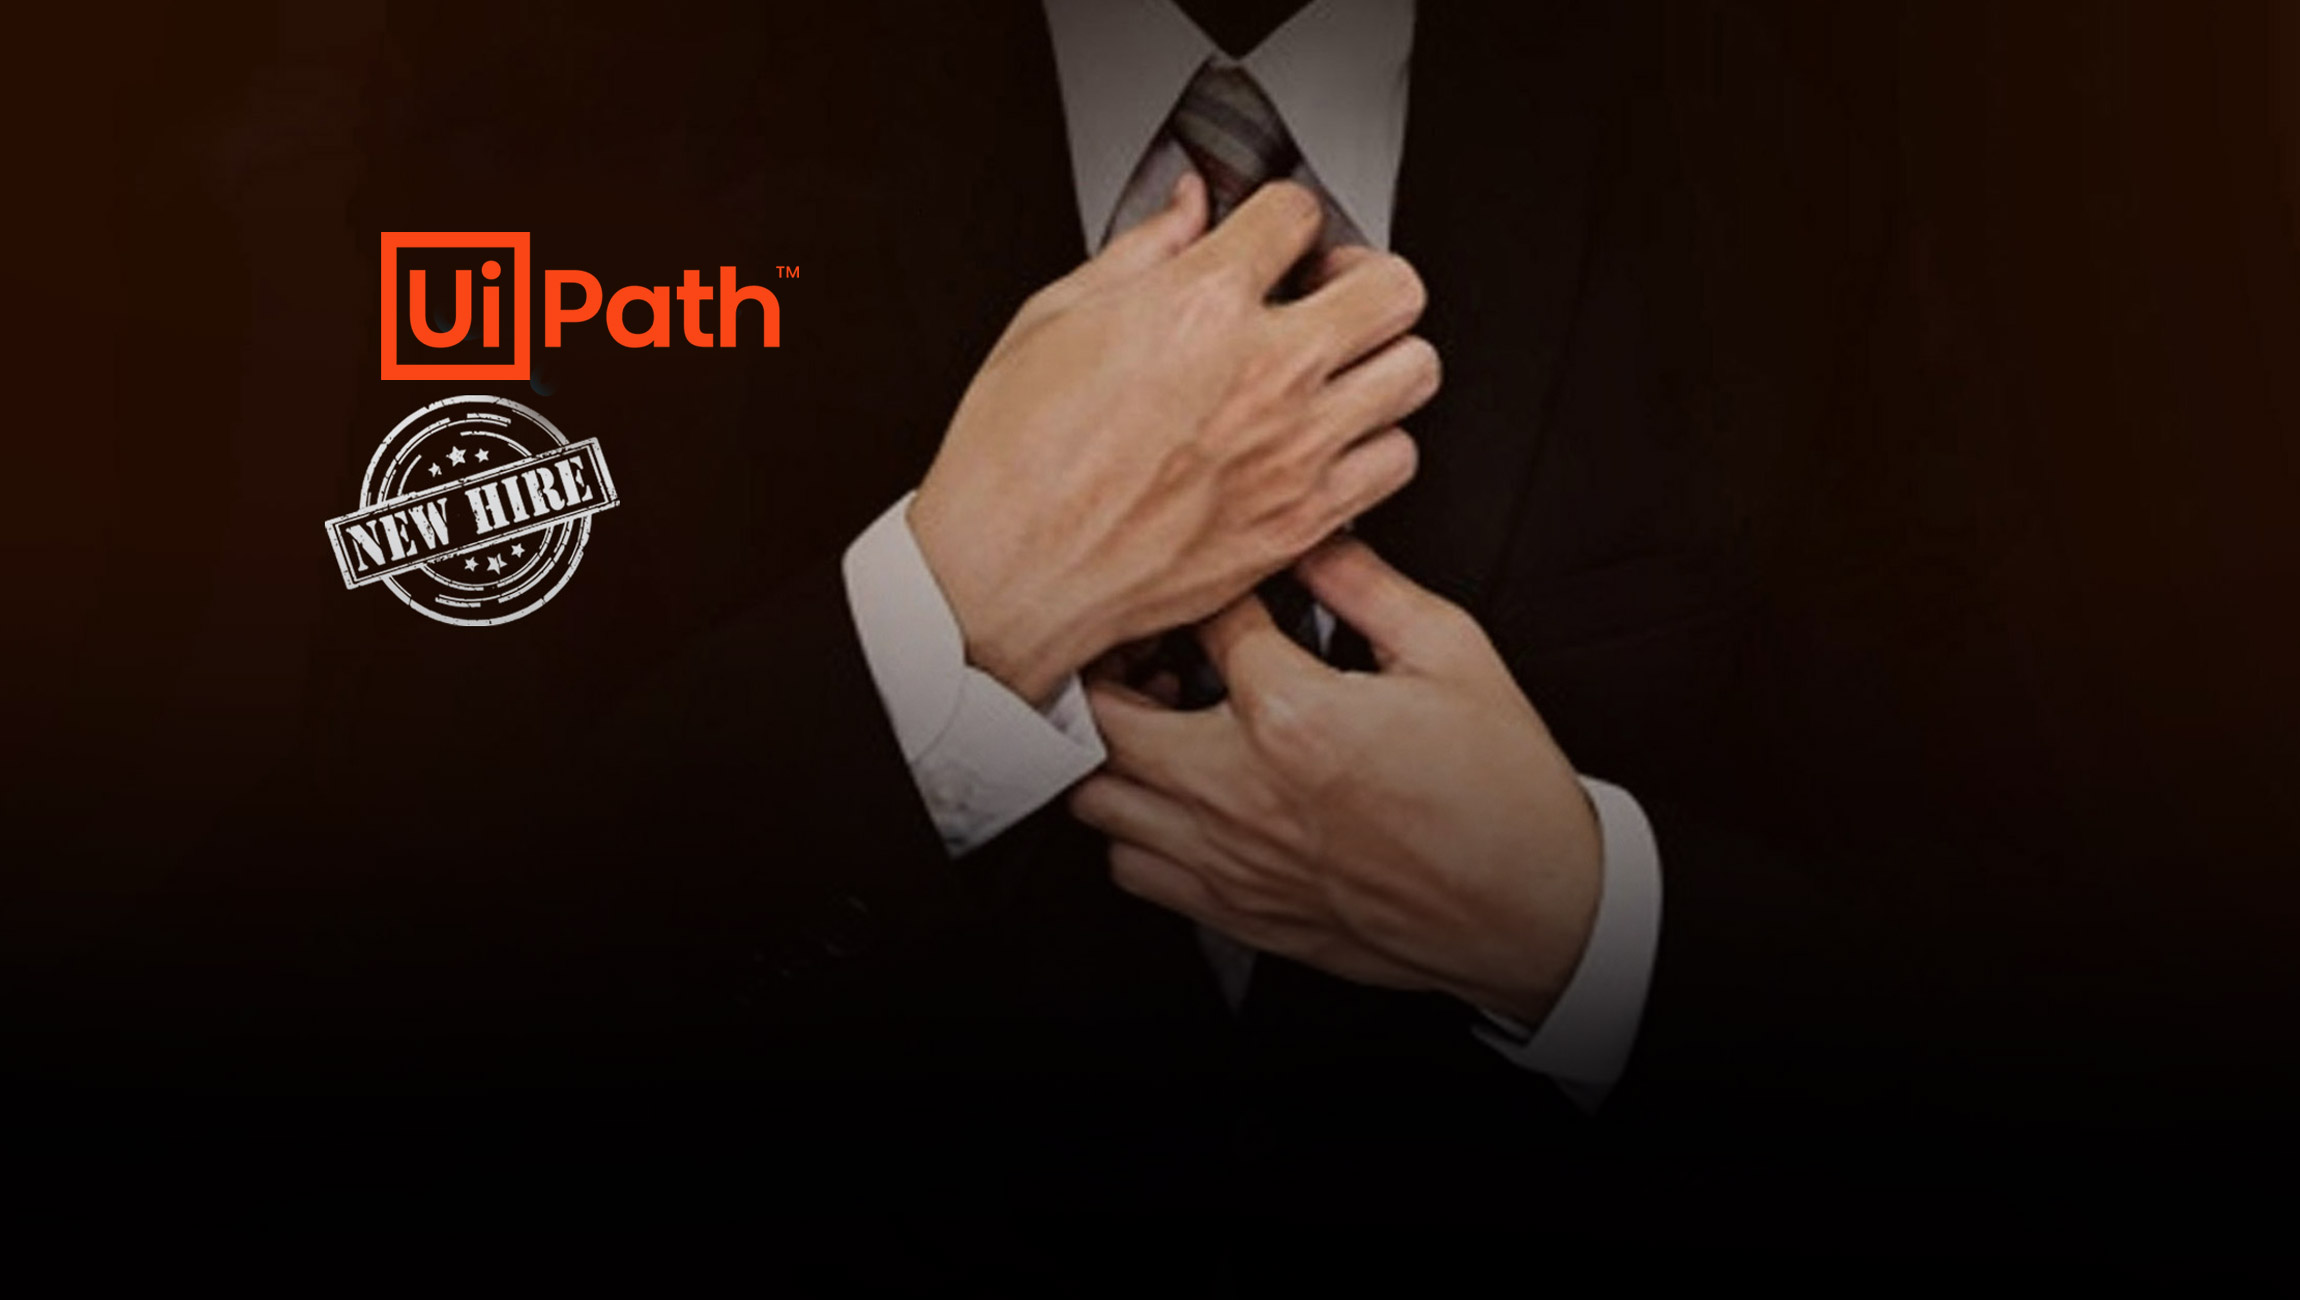 UiPath Adds Two Members to Its Board of Directors, Extends RPA Market Leadership